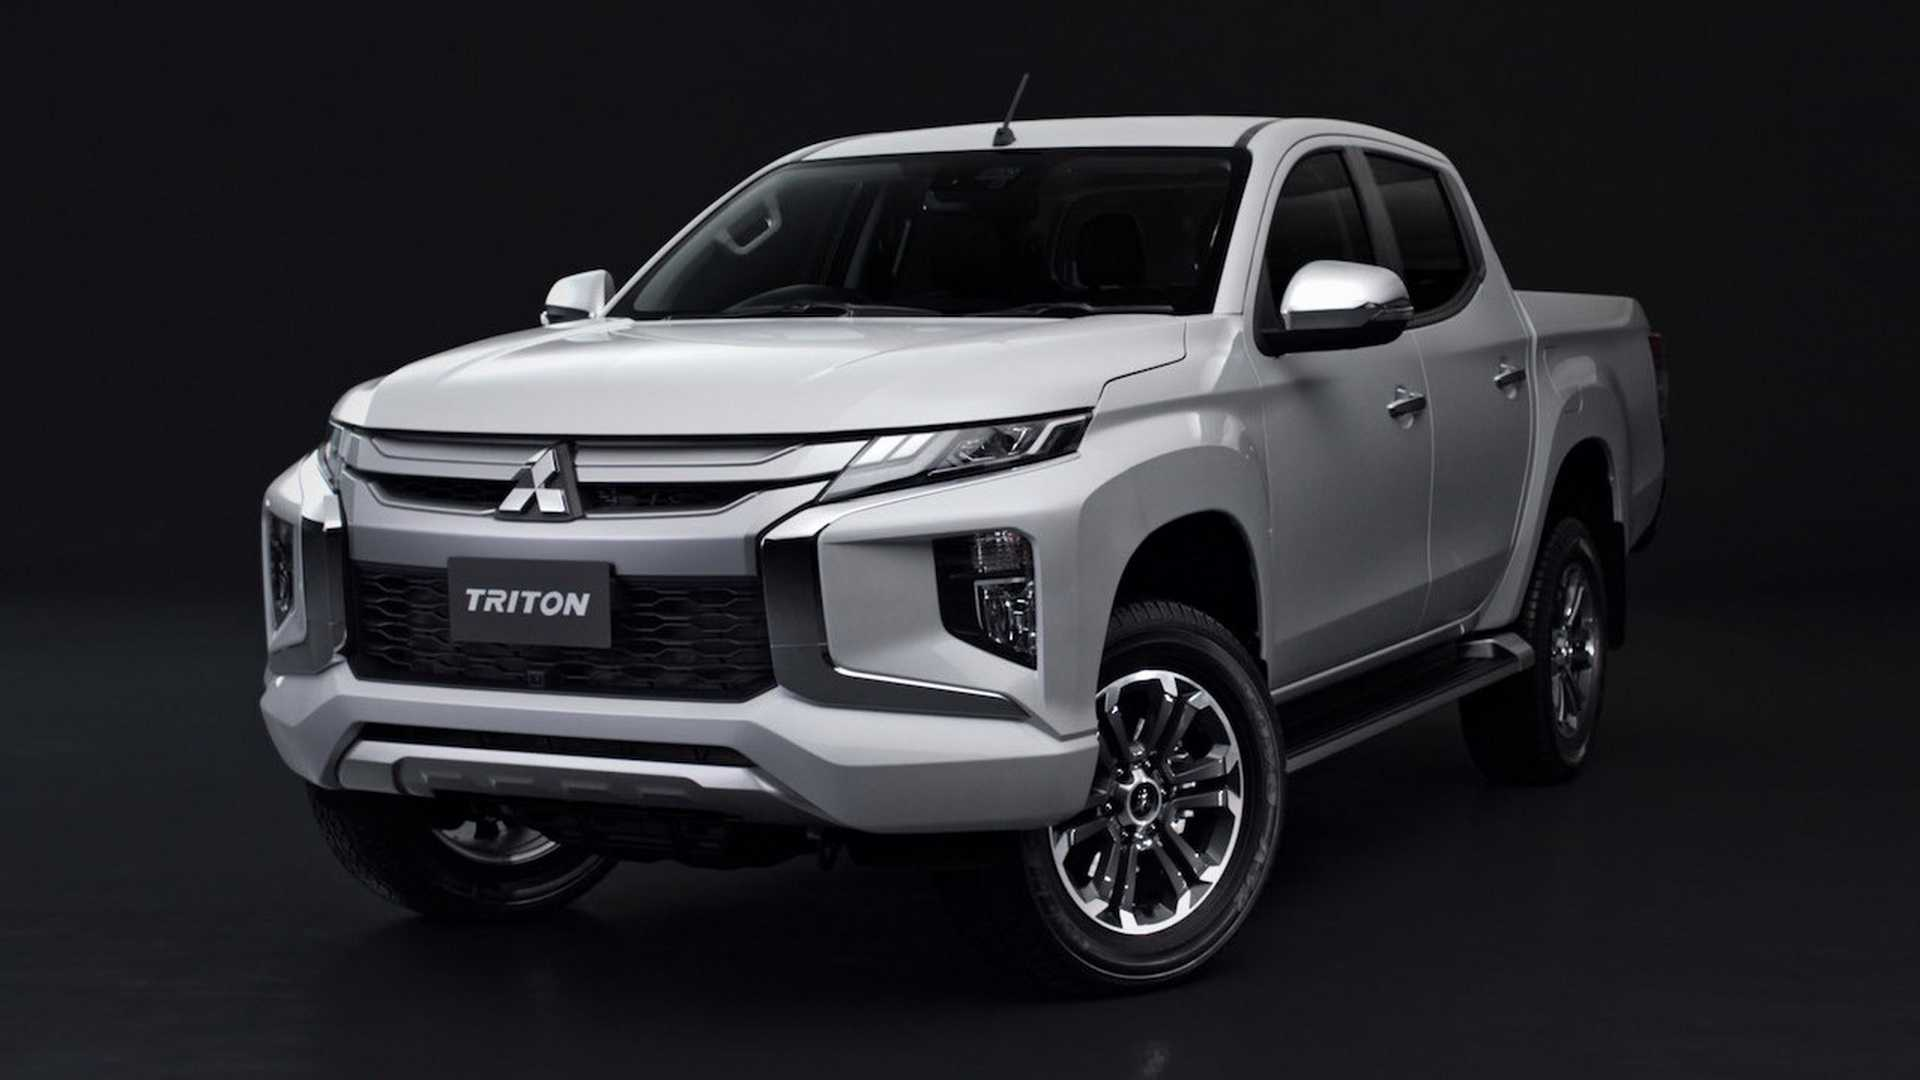 41 The Best 2020 Mitsubishi Triton Exterior And Interior